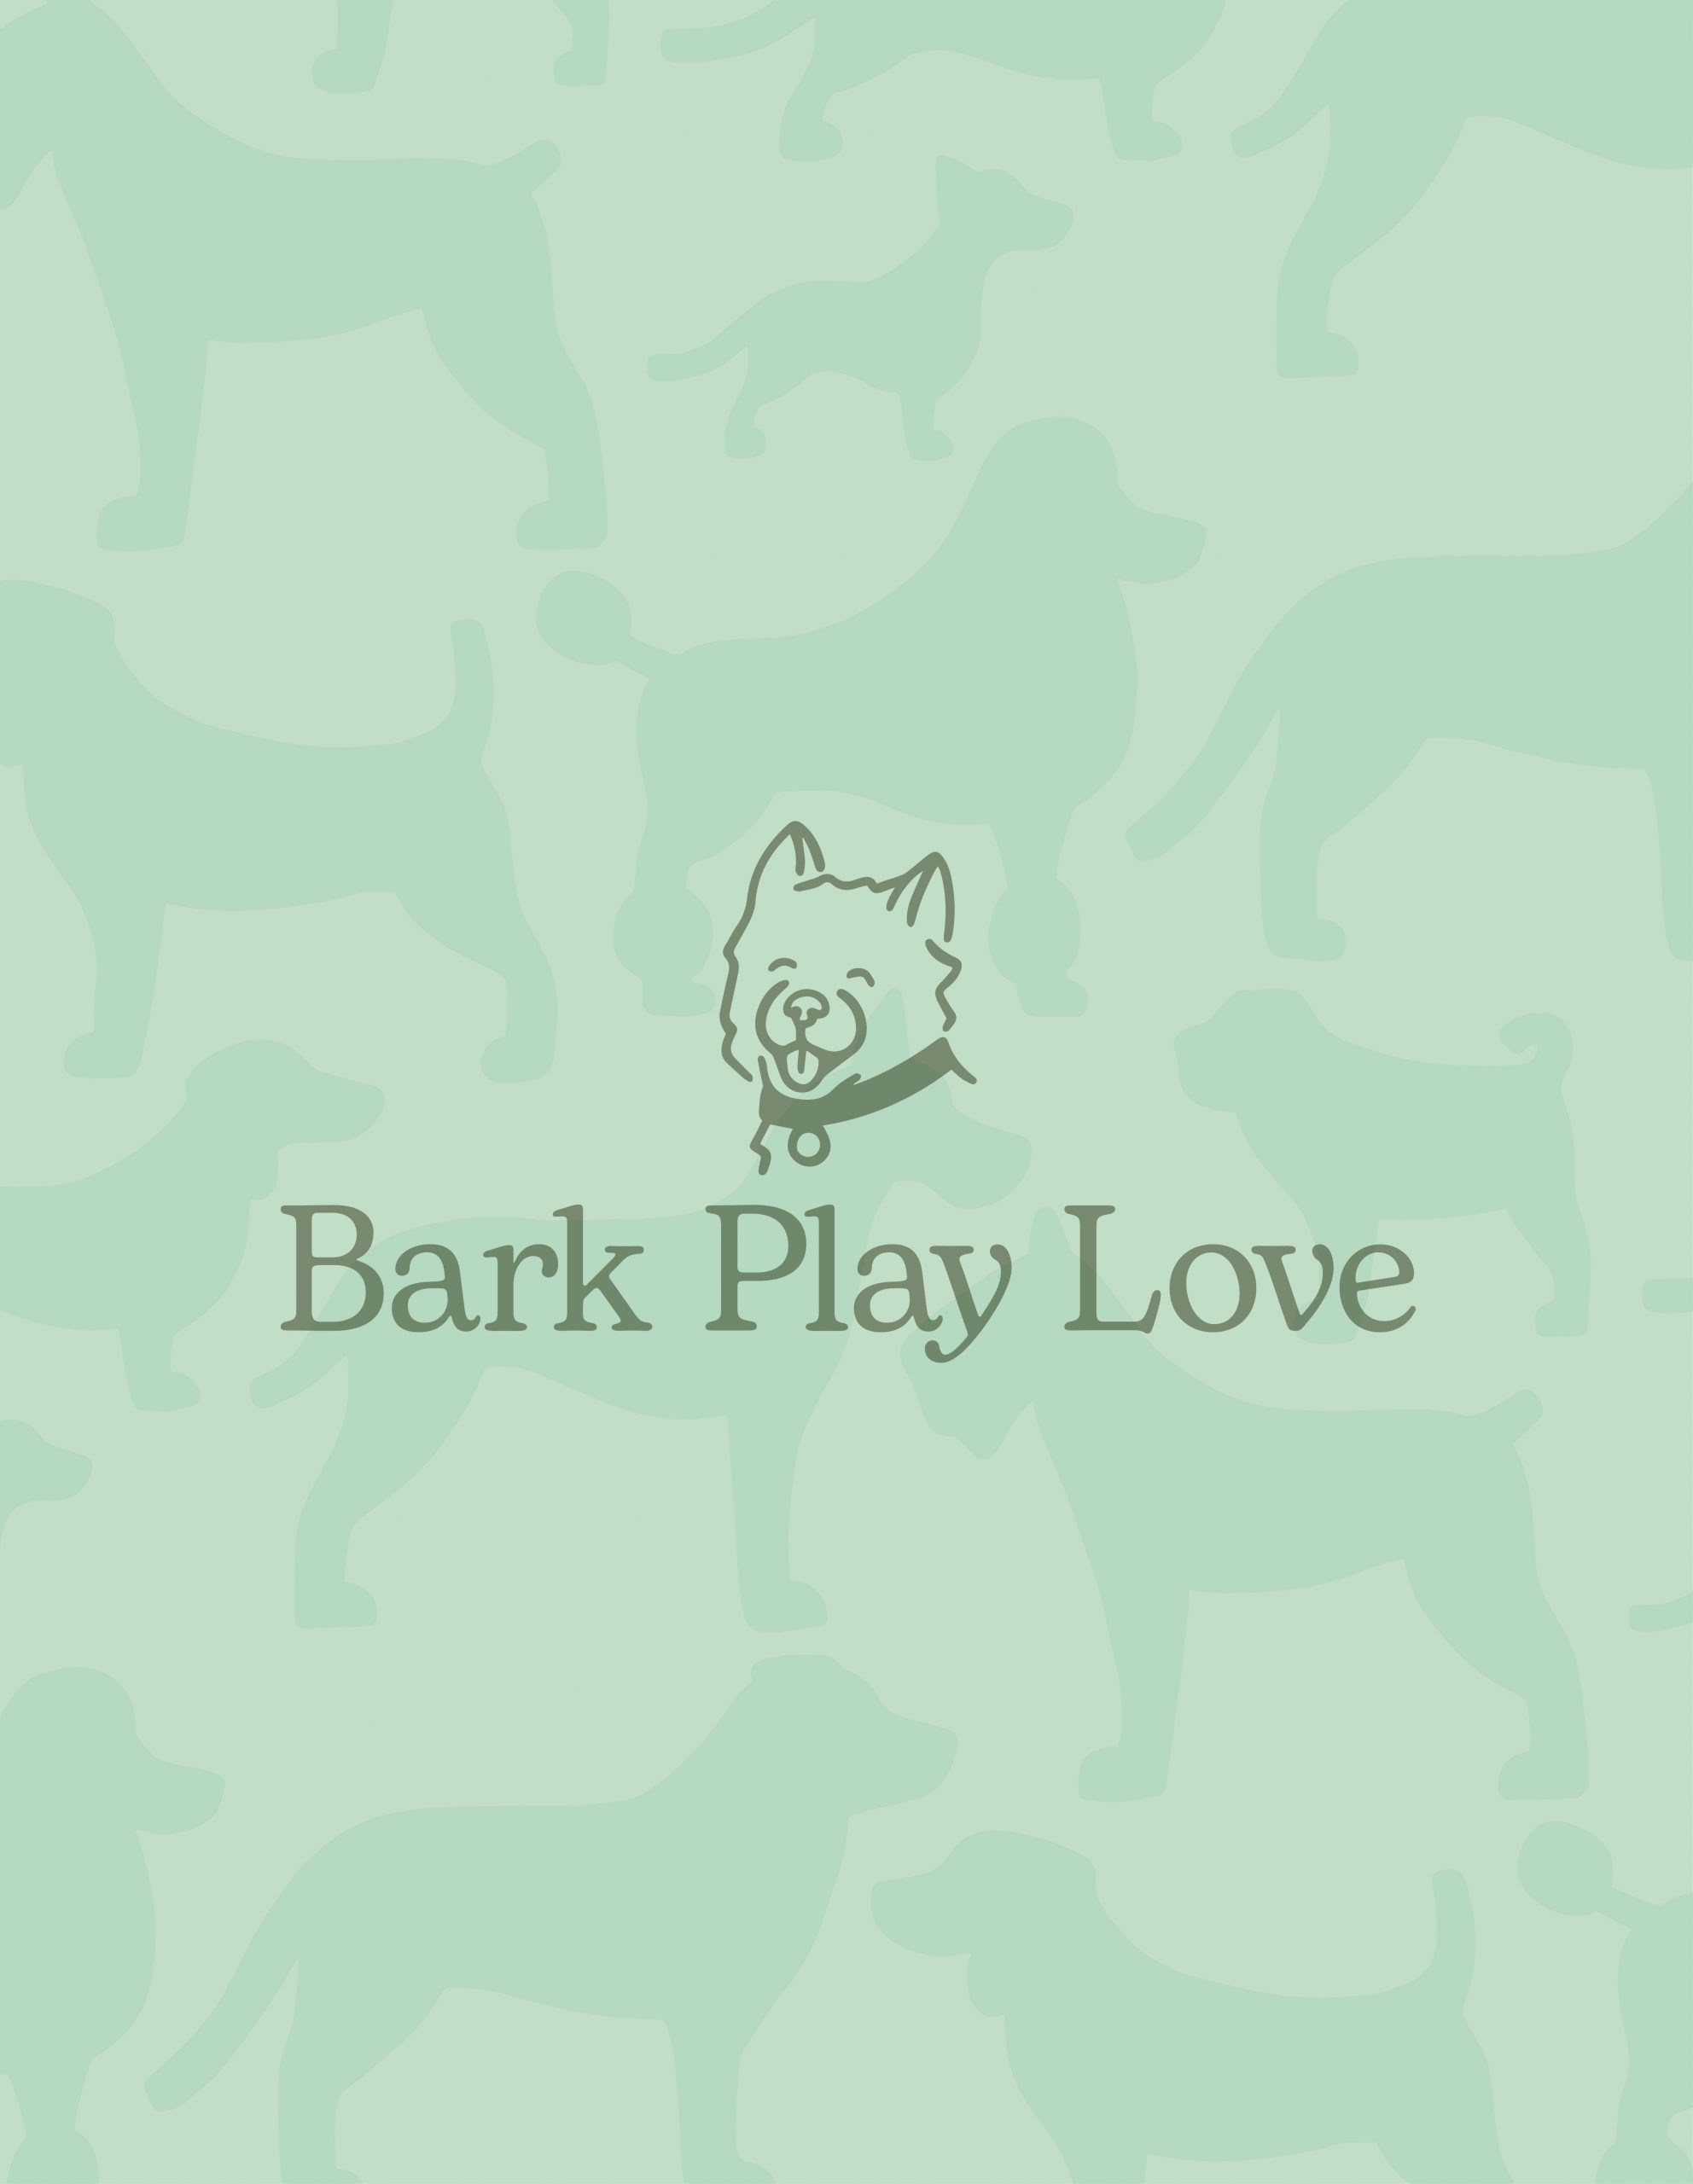 Bark Play Love with dog illustration